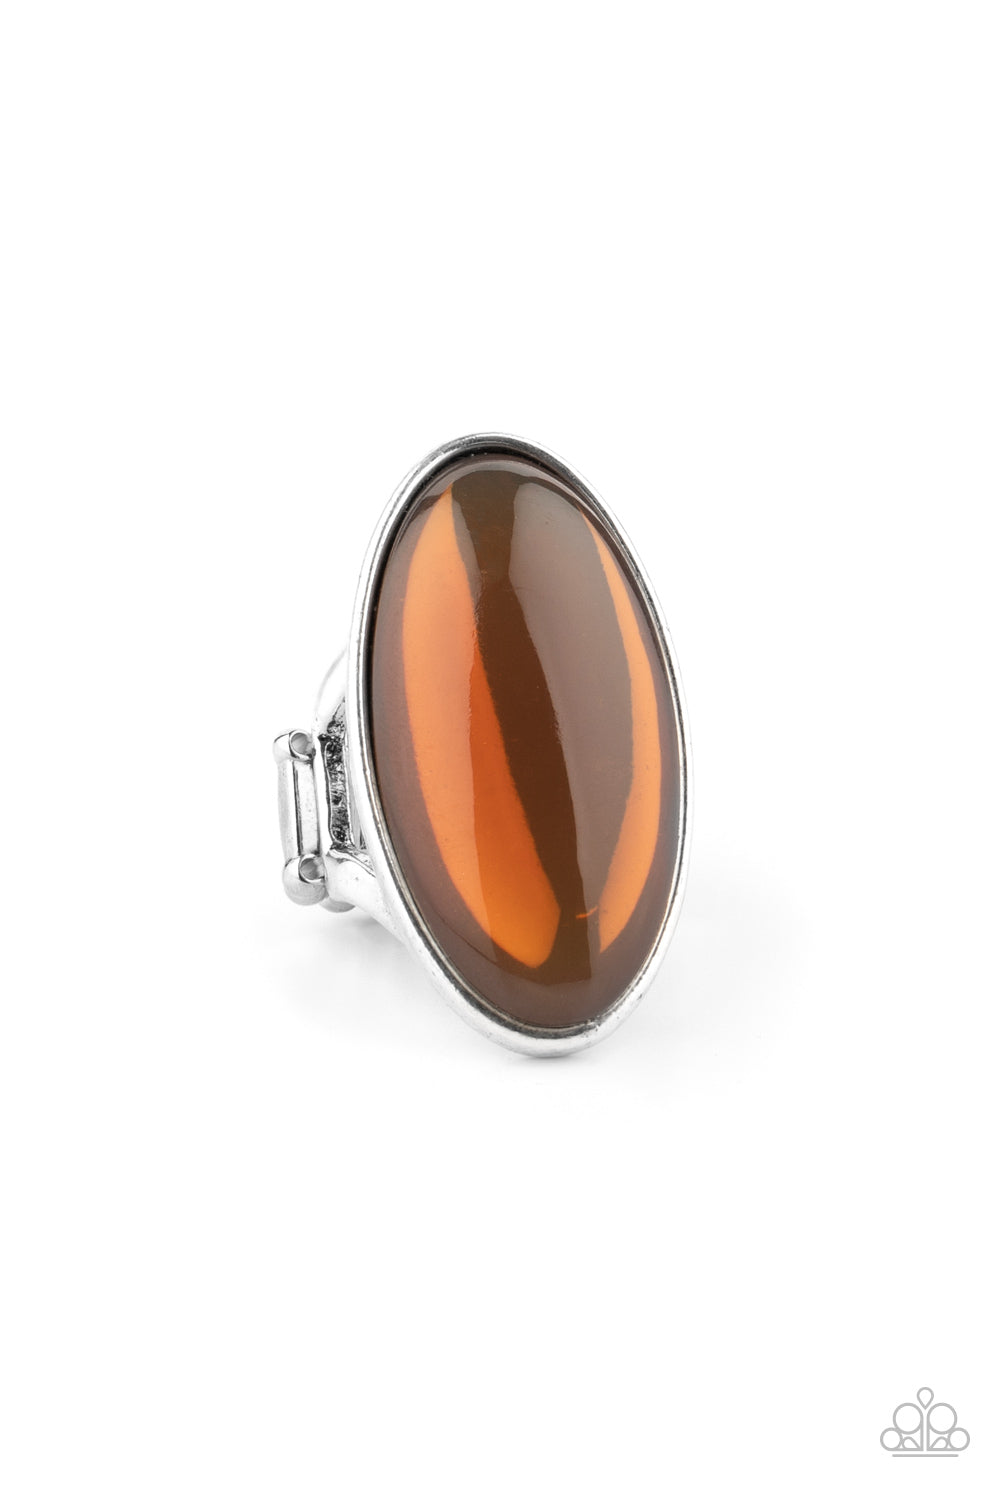 Mystic Moon - Brown - Paparazzi Ring - New Release